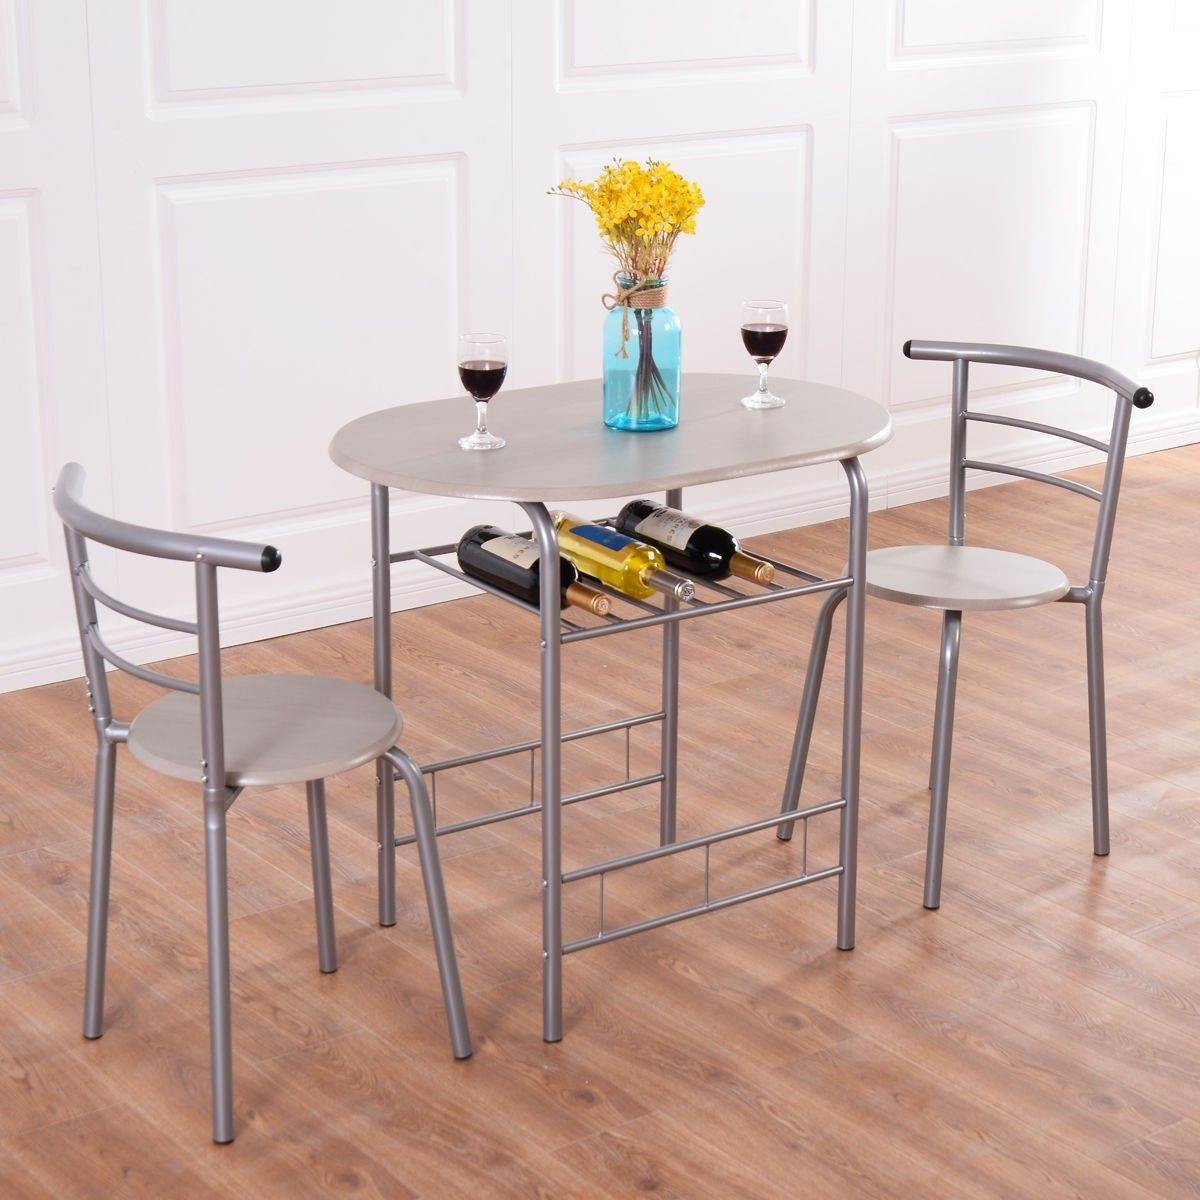 3Pcs Bistro Dining Set Small Kitchen Indoor Outdoor Table Chairs Patio Furniture